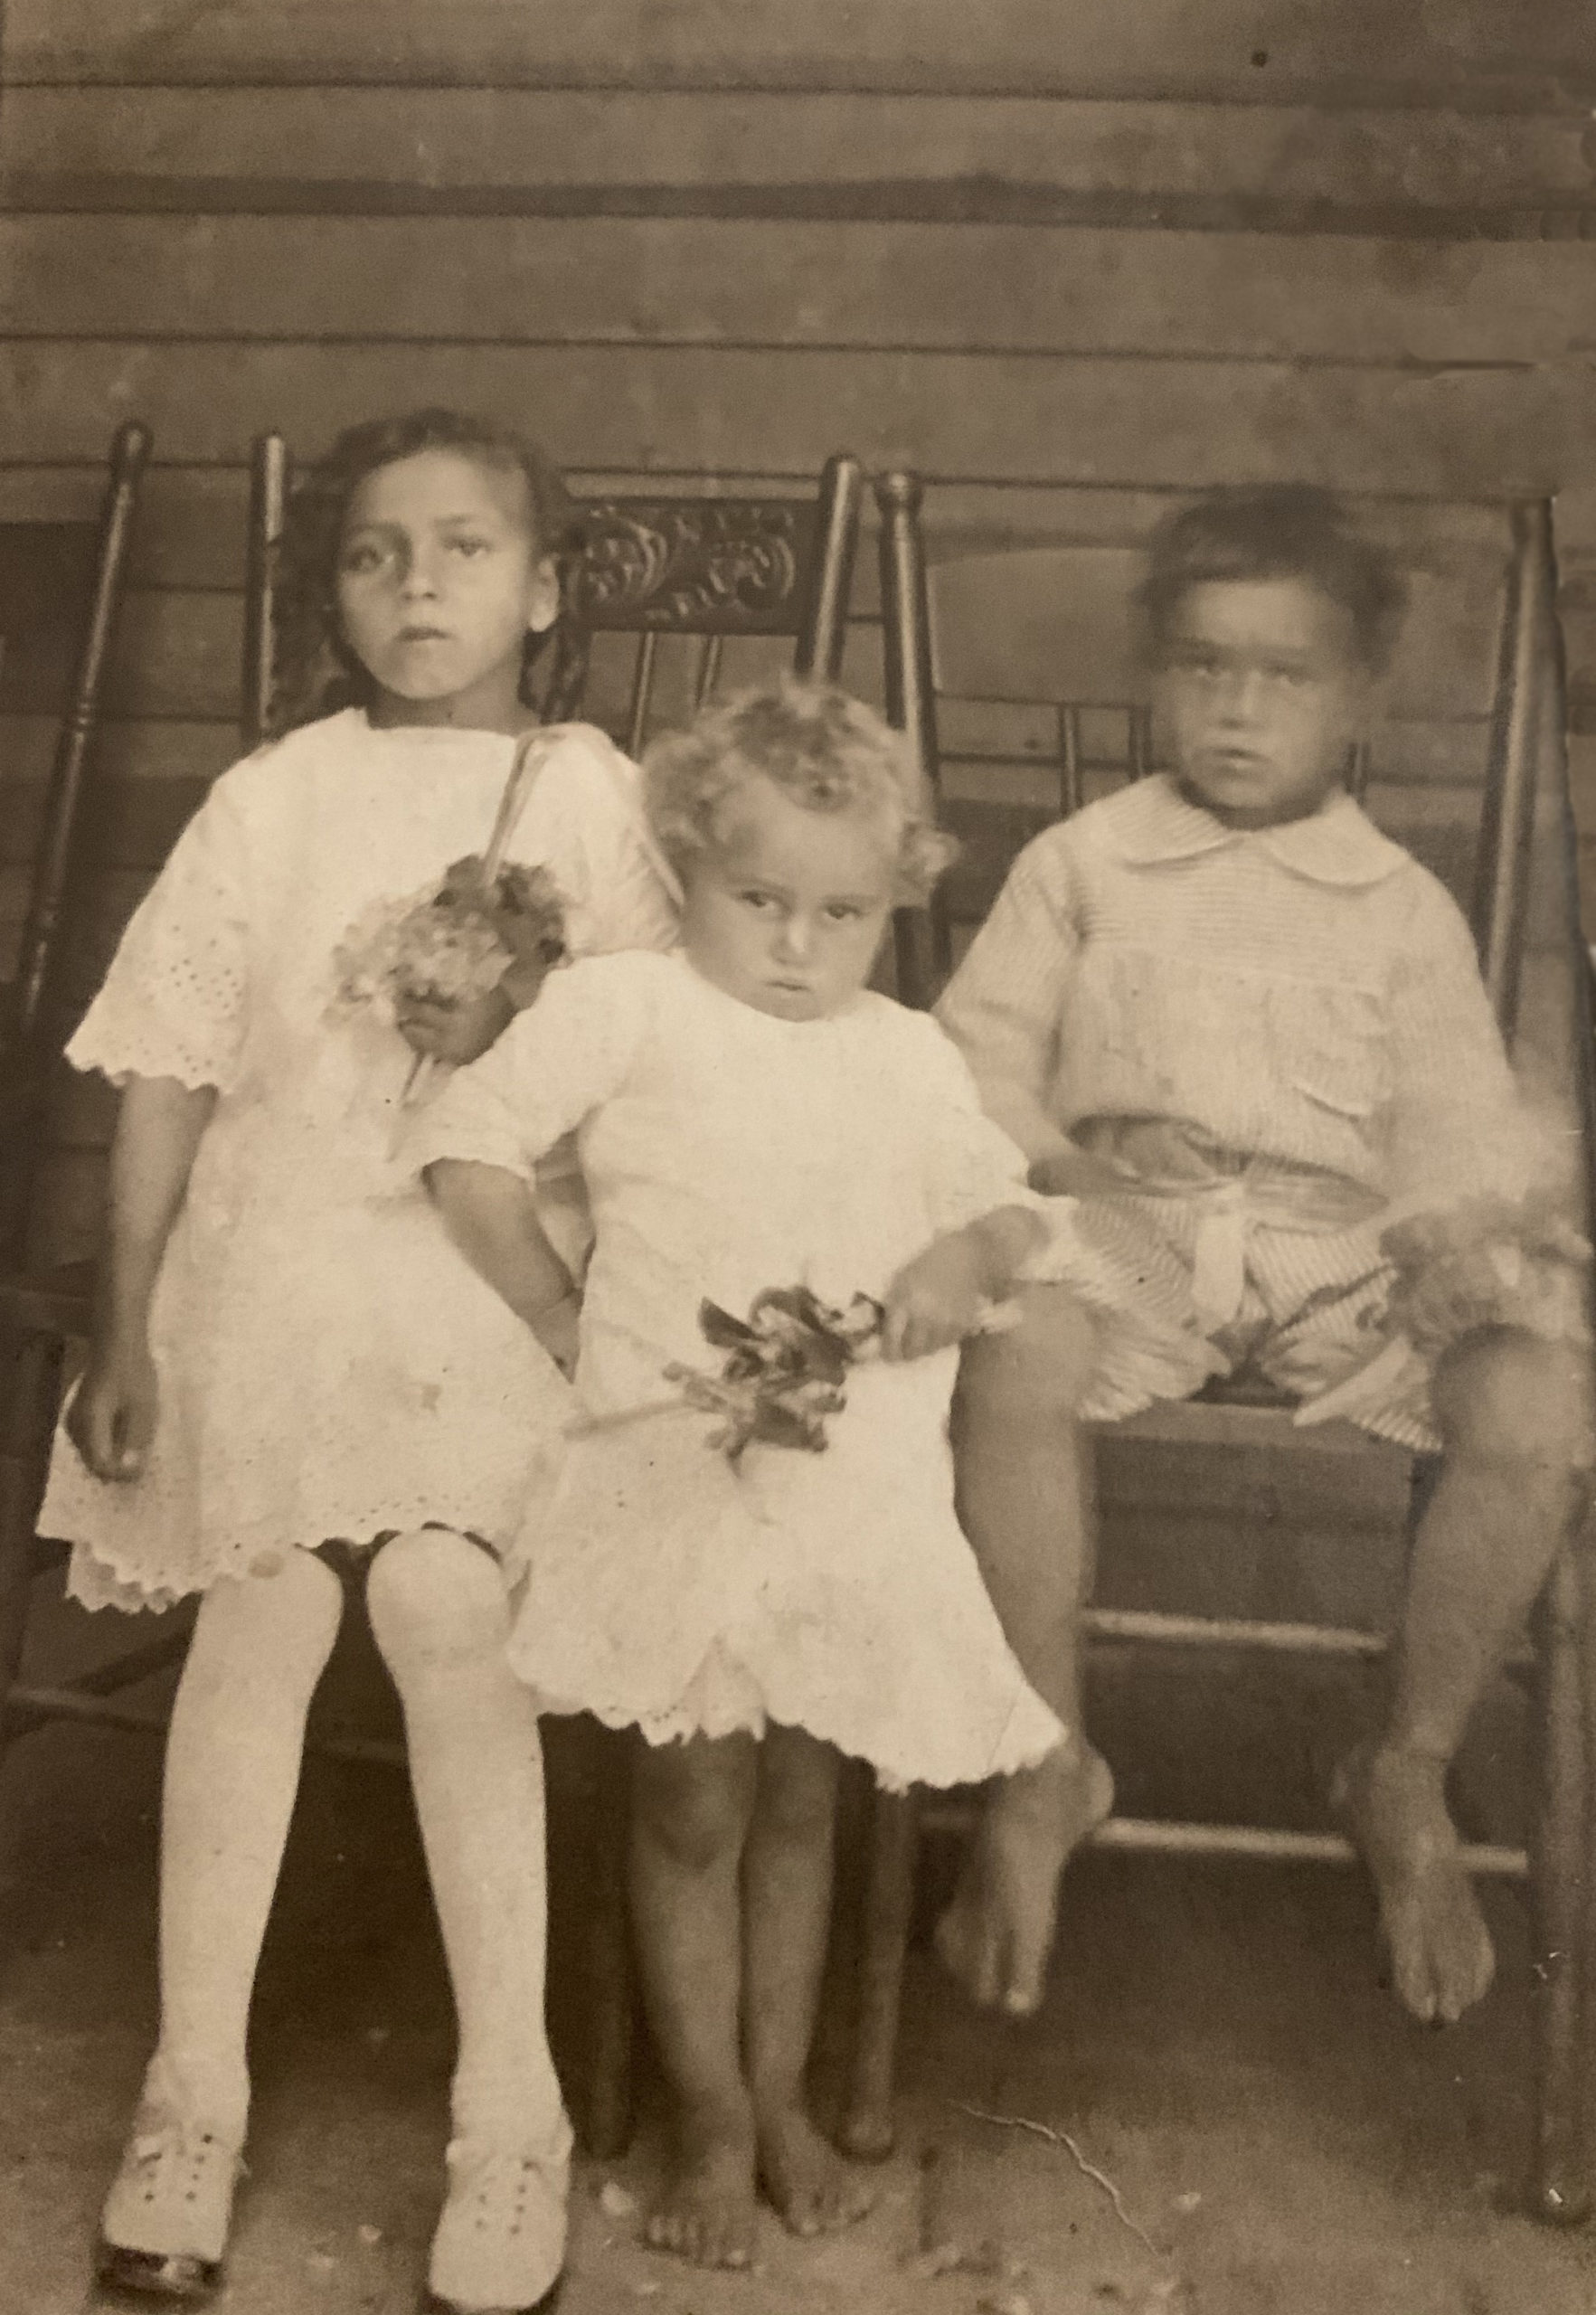 11.Confirmed by Lenore O. l-r: Olivia Johnson Murray, Adelaide Johnson Odom and Welch Johnson. Thank you !